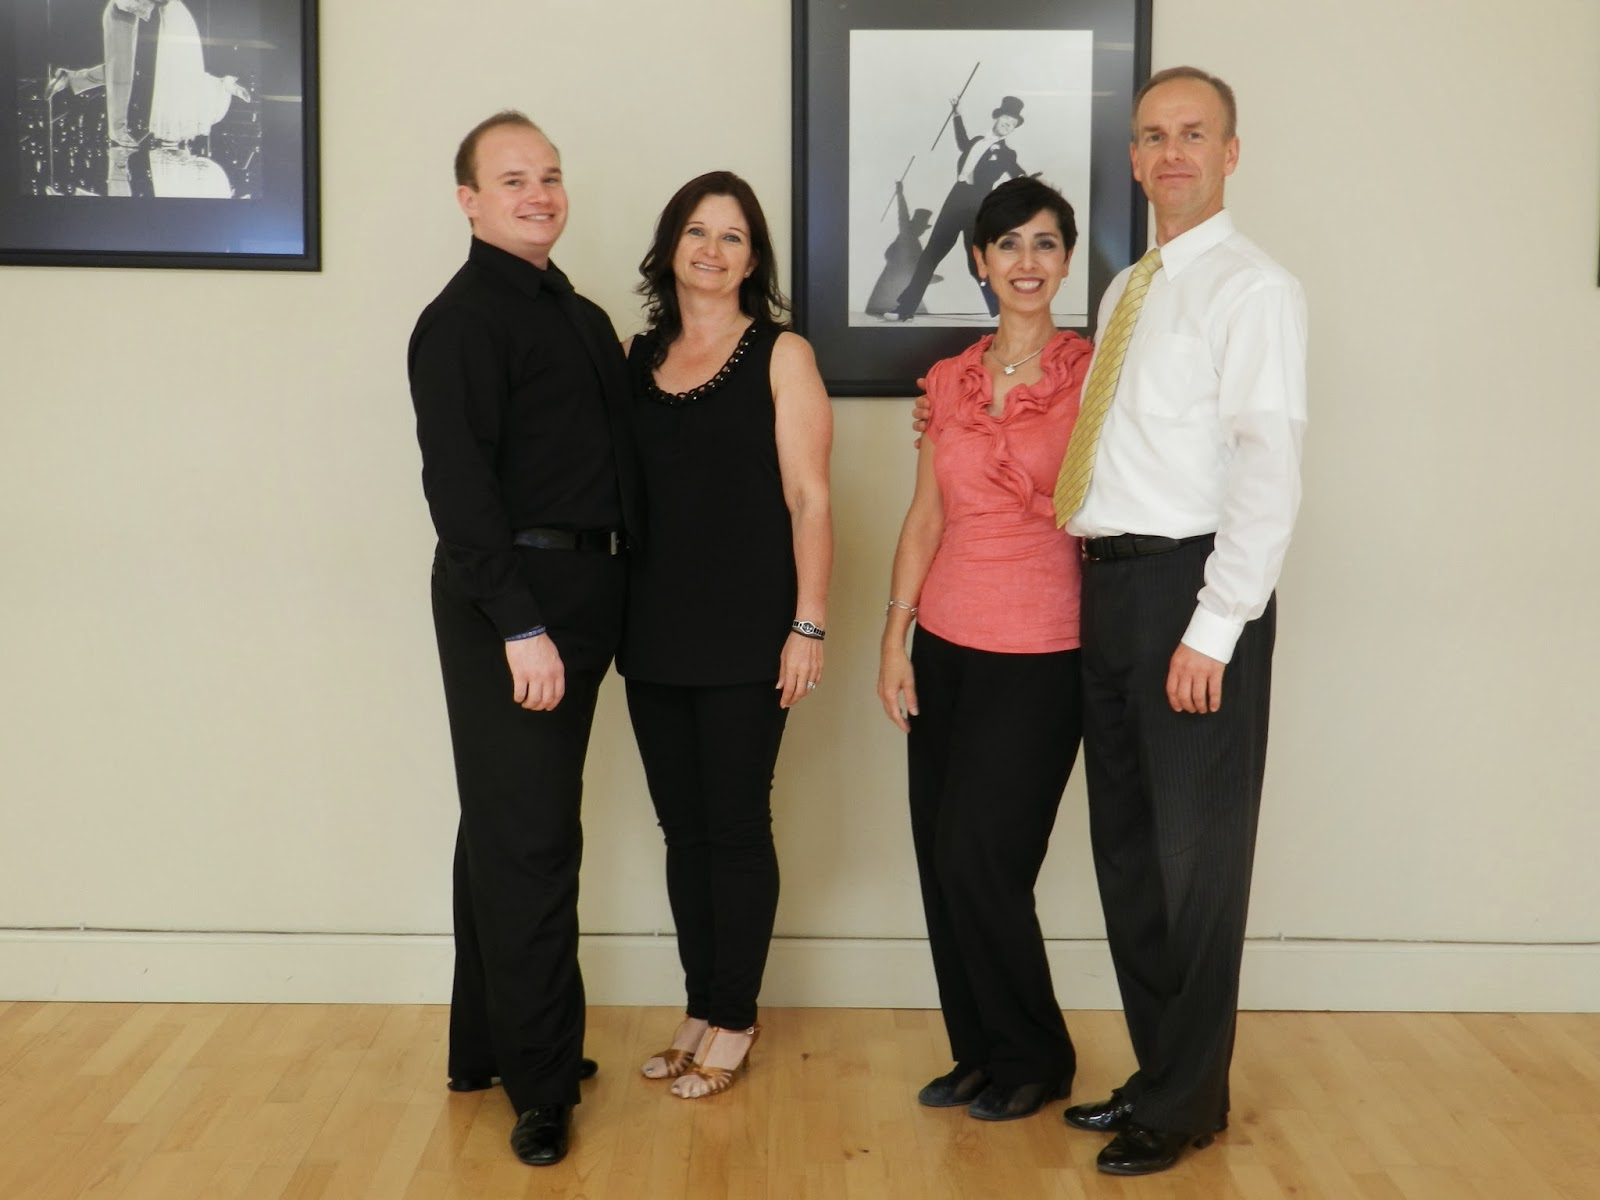 Fred Astaire Dance Studio Blog: 'It's Good to Give Back